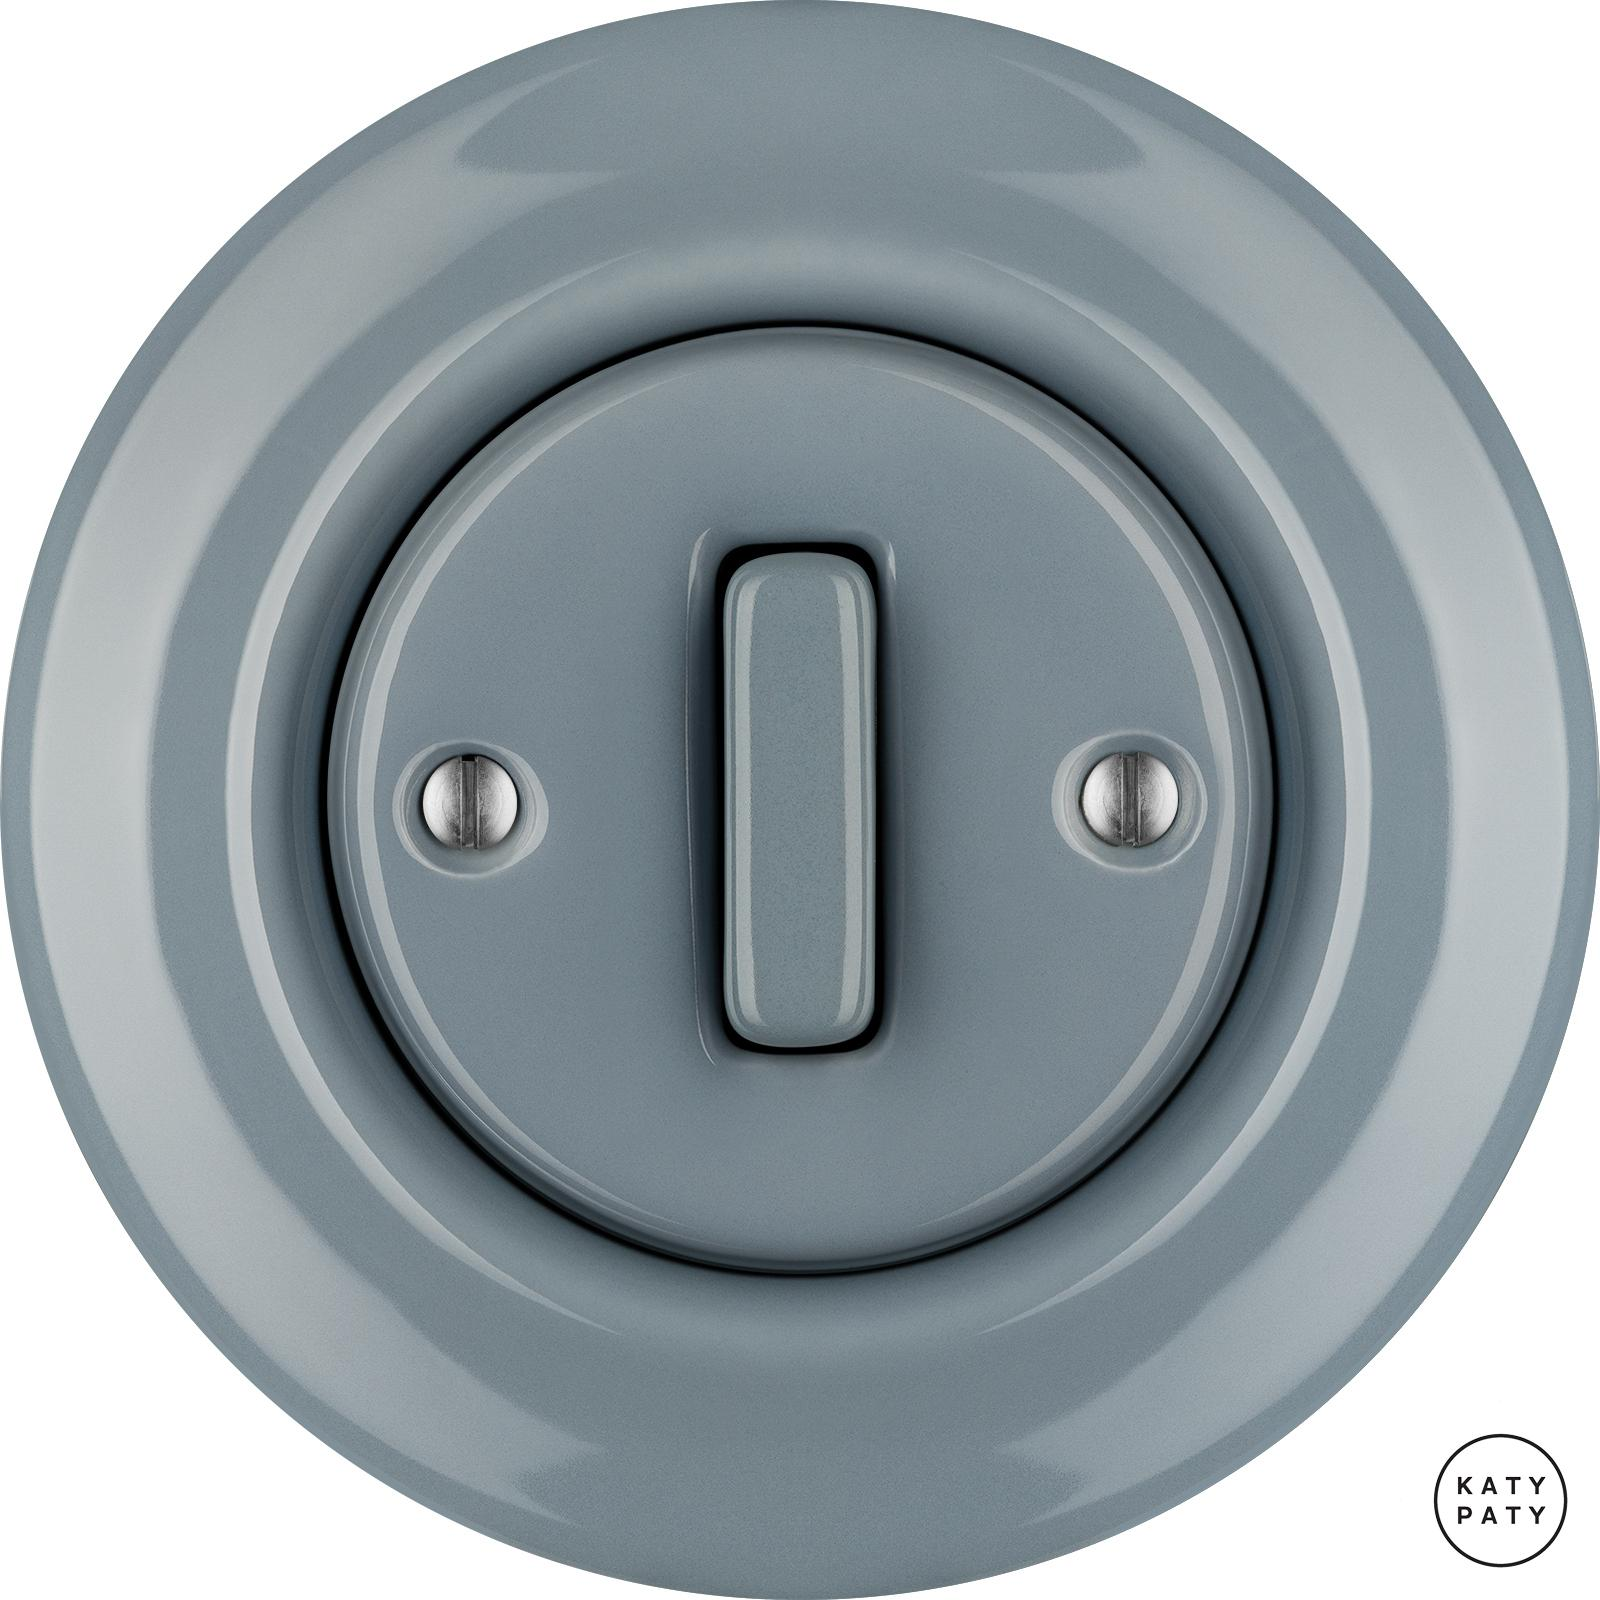 Porcelain switches - 1 gang - SLIM ()  - LIVOR | Katy Paty